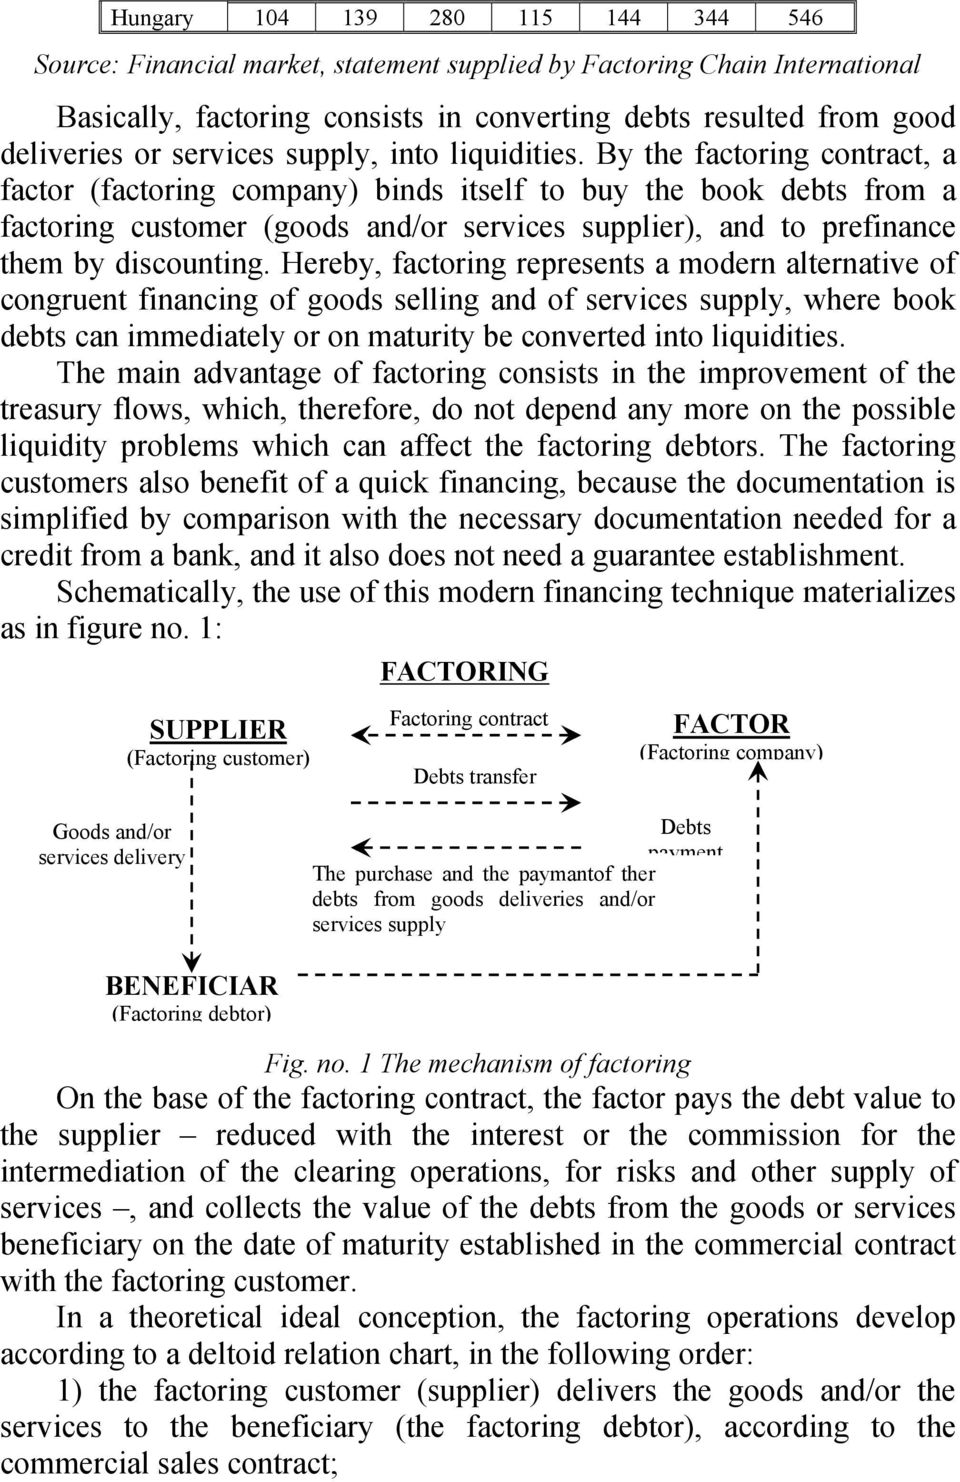 By the factoring contract, a factor (factoring company) binds itself to buy the book debts from a factoring customer (goods and/or services supplier), and to prefinance them by discounting.